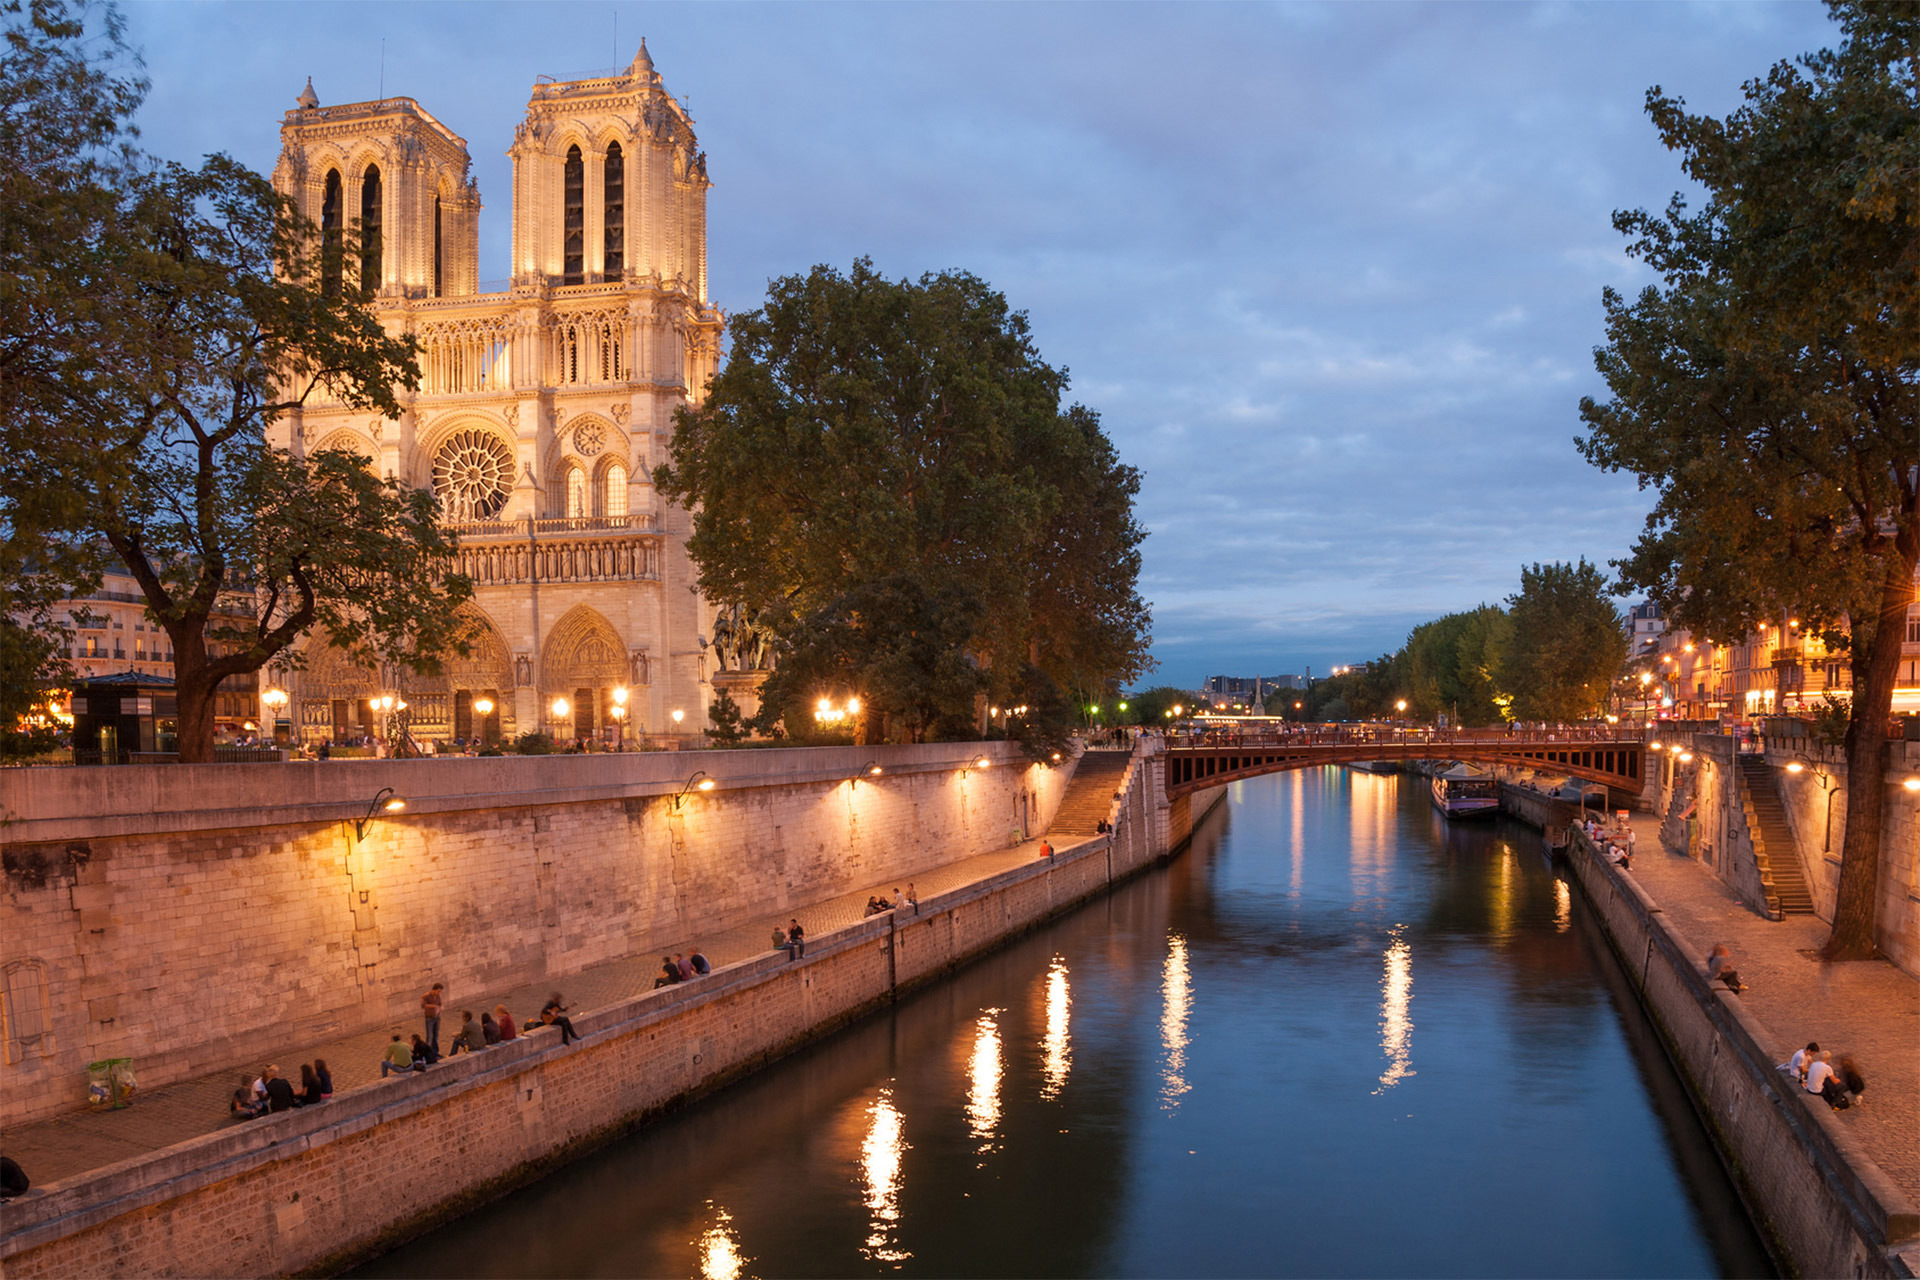 Don't miss the majesty of Notre Dame at night